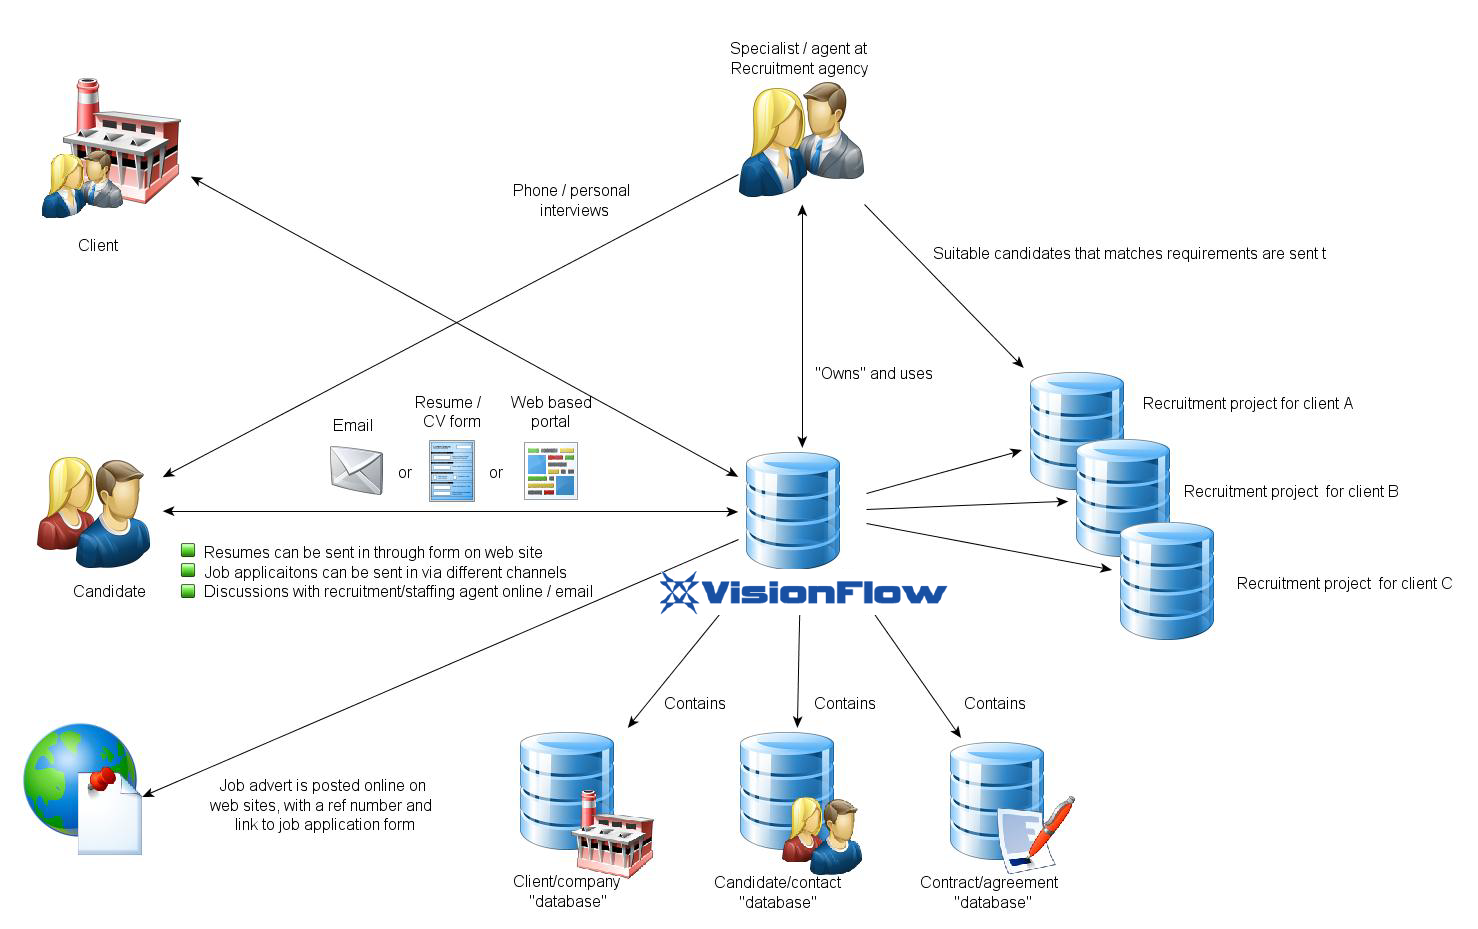 Knowledge Base Images/Solutions / Use cases/visionflow_recruitment.png